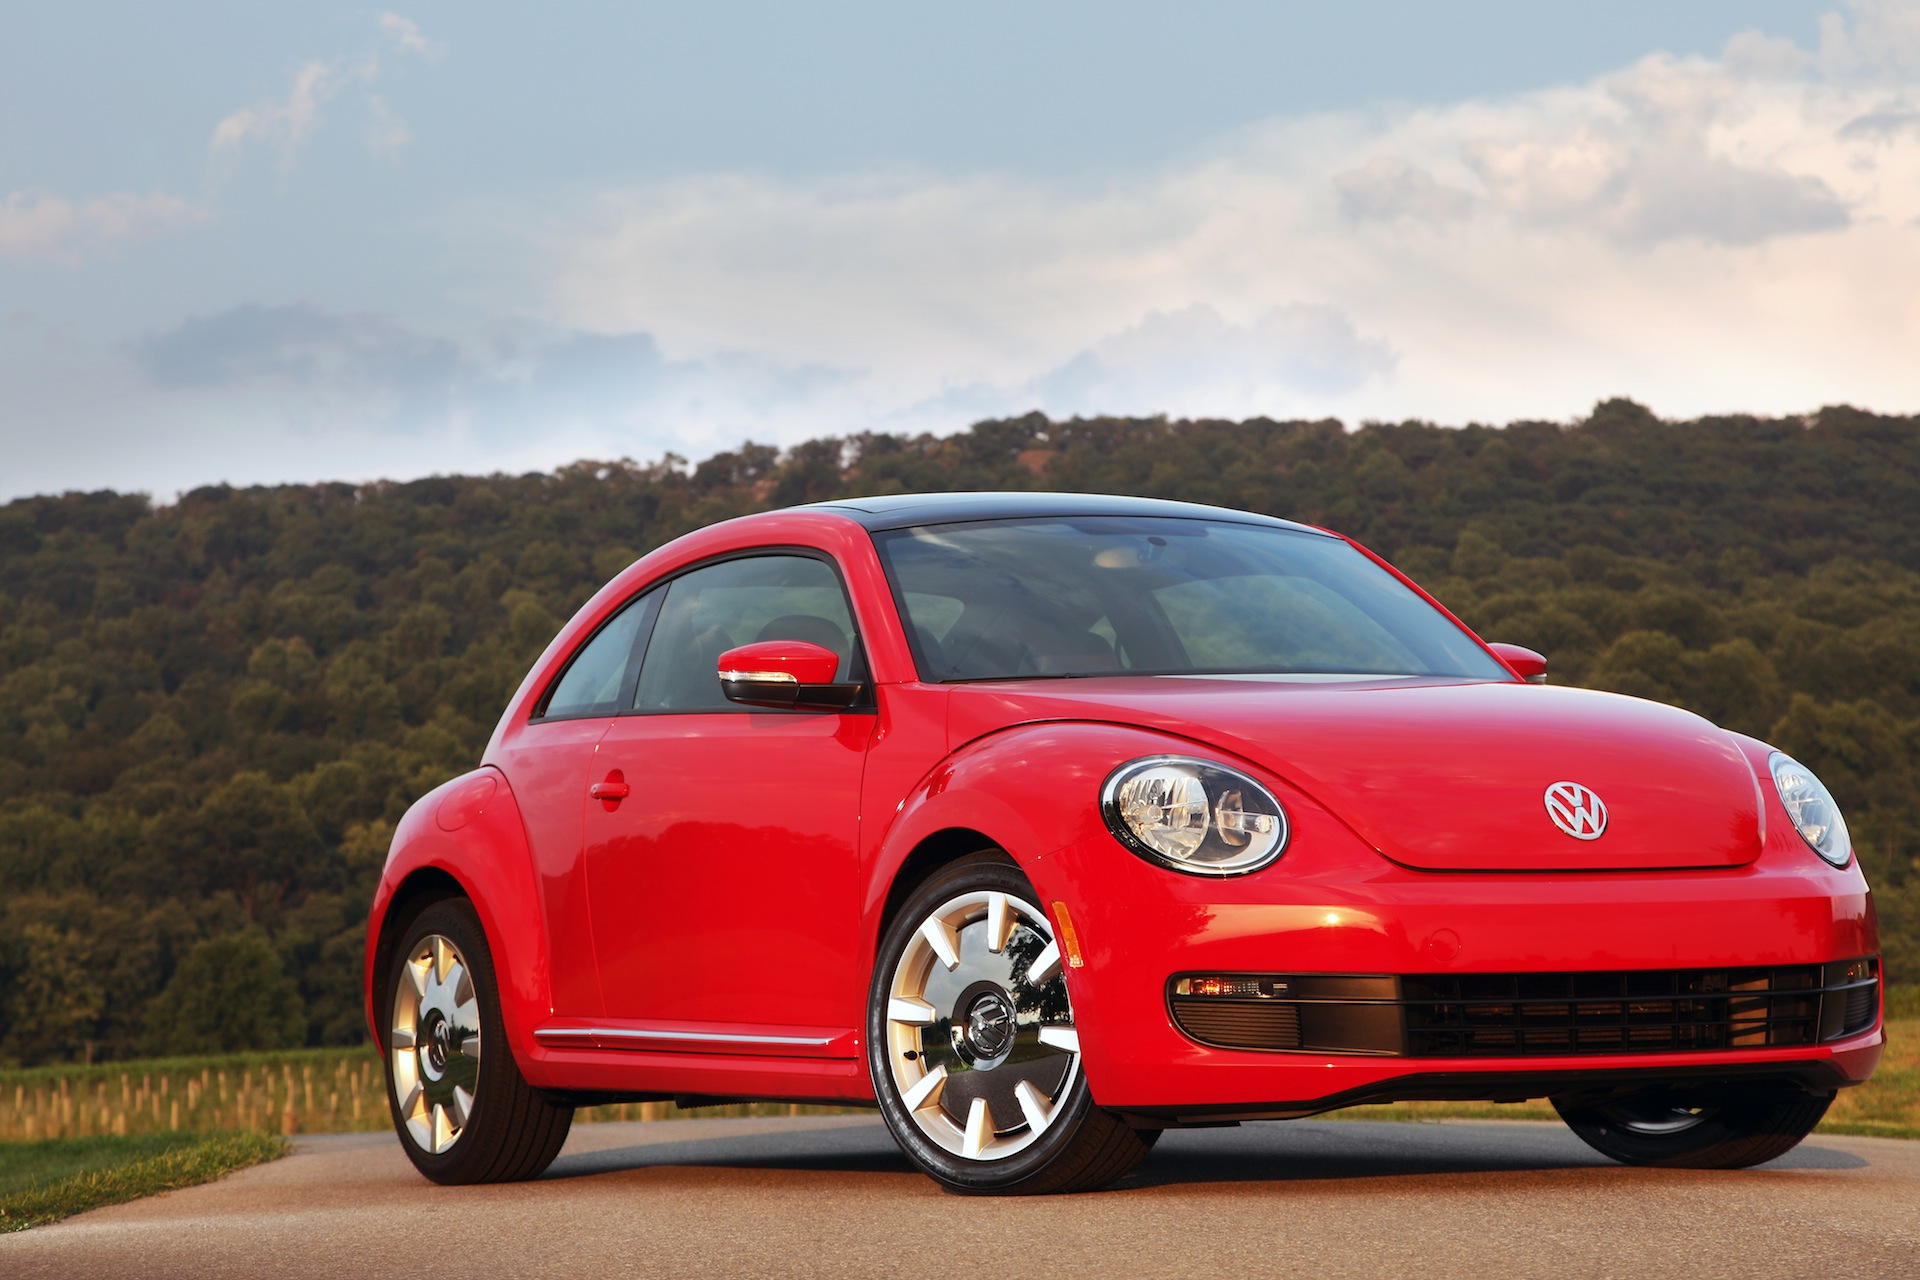 Vw Beetle Range To Expand In 2019 As Sub